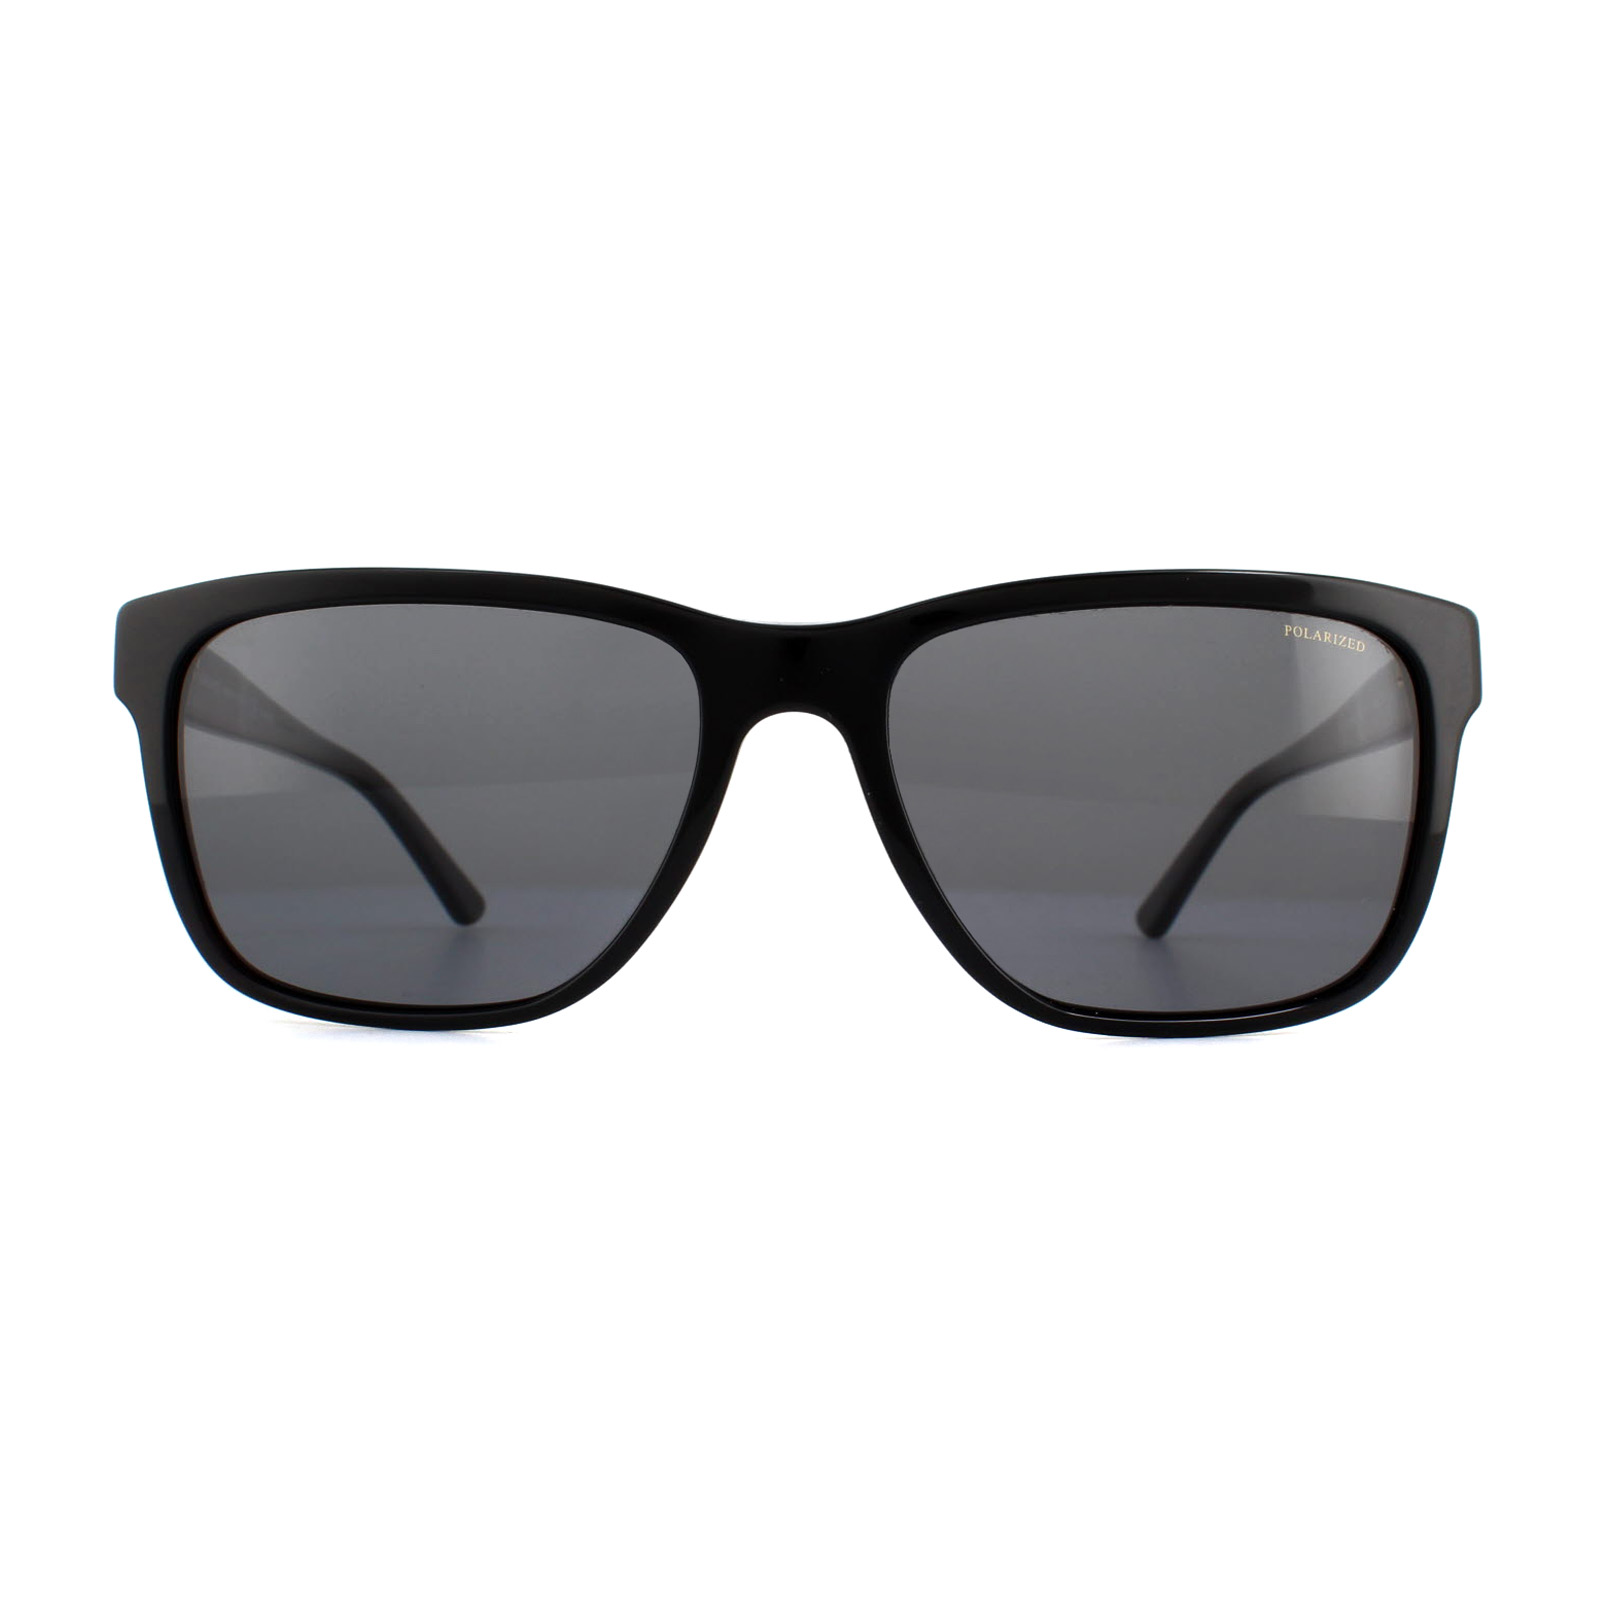 9e1308a6cfd4d Versace Sunglasses VE4249 GB1 81 Black Grey Polarized 8053672137217 ...